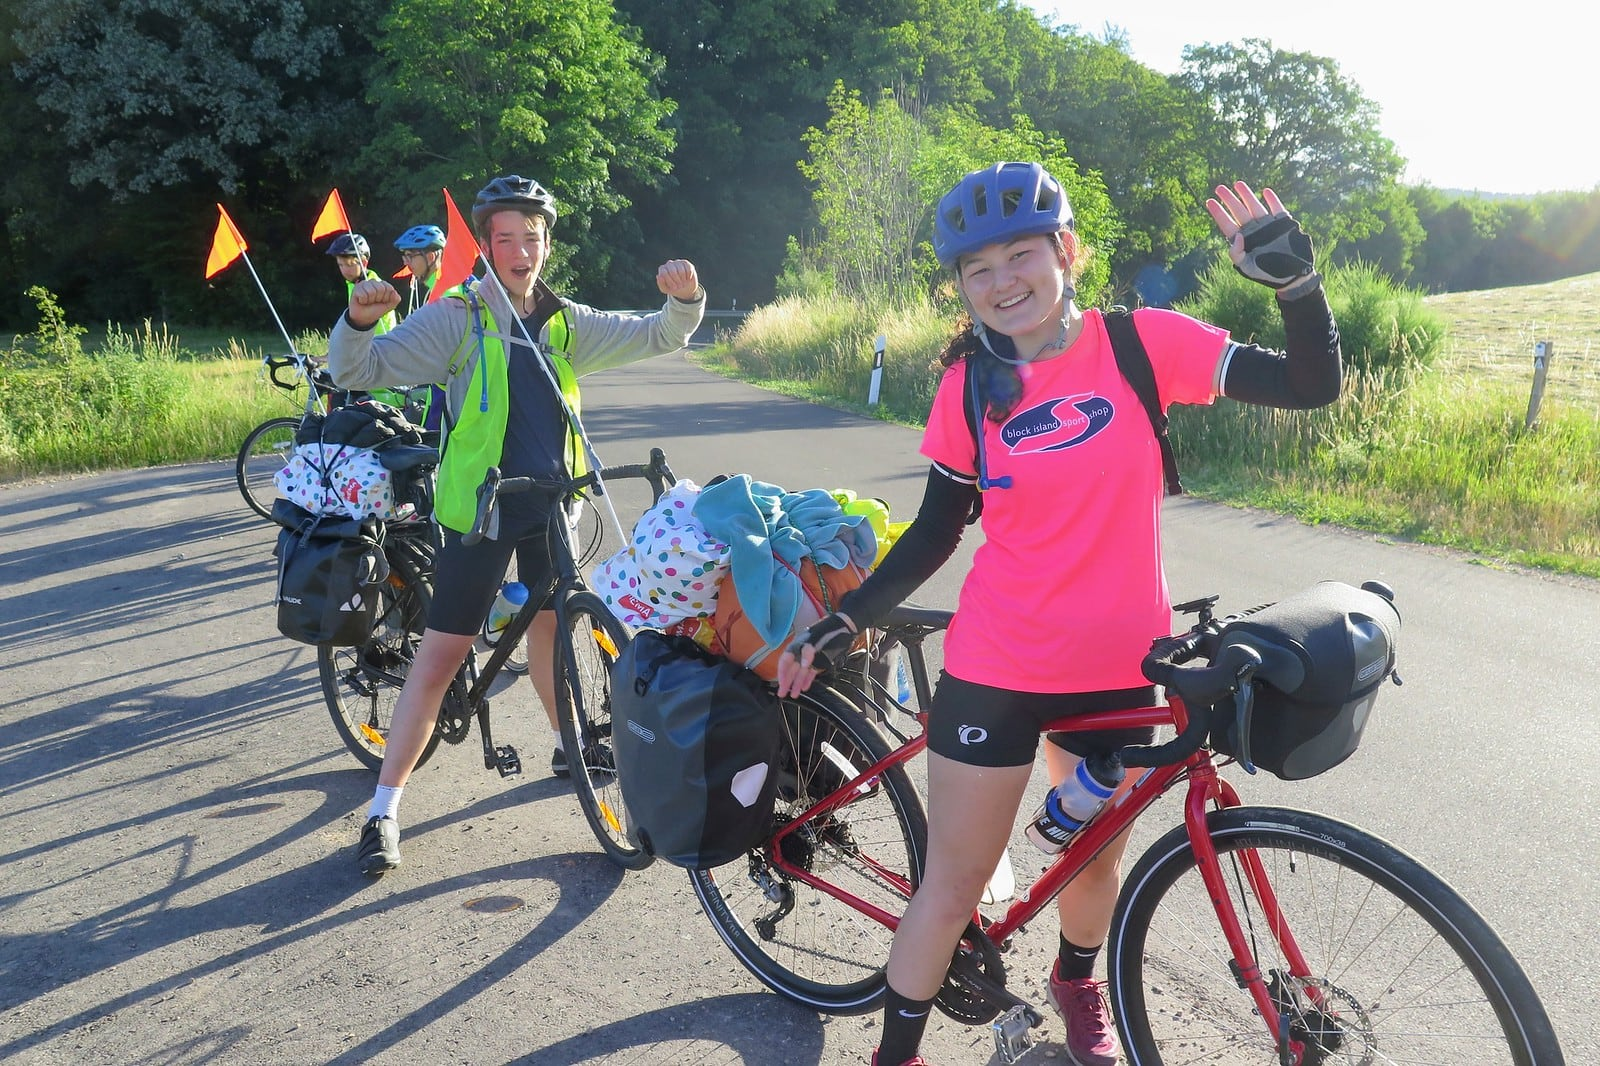 Campers stop to pose and rest their legs on this teen summer biking trip through europe